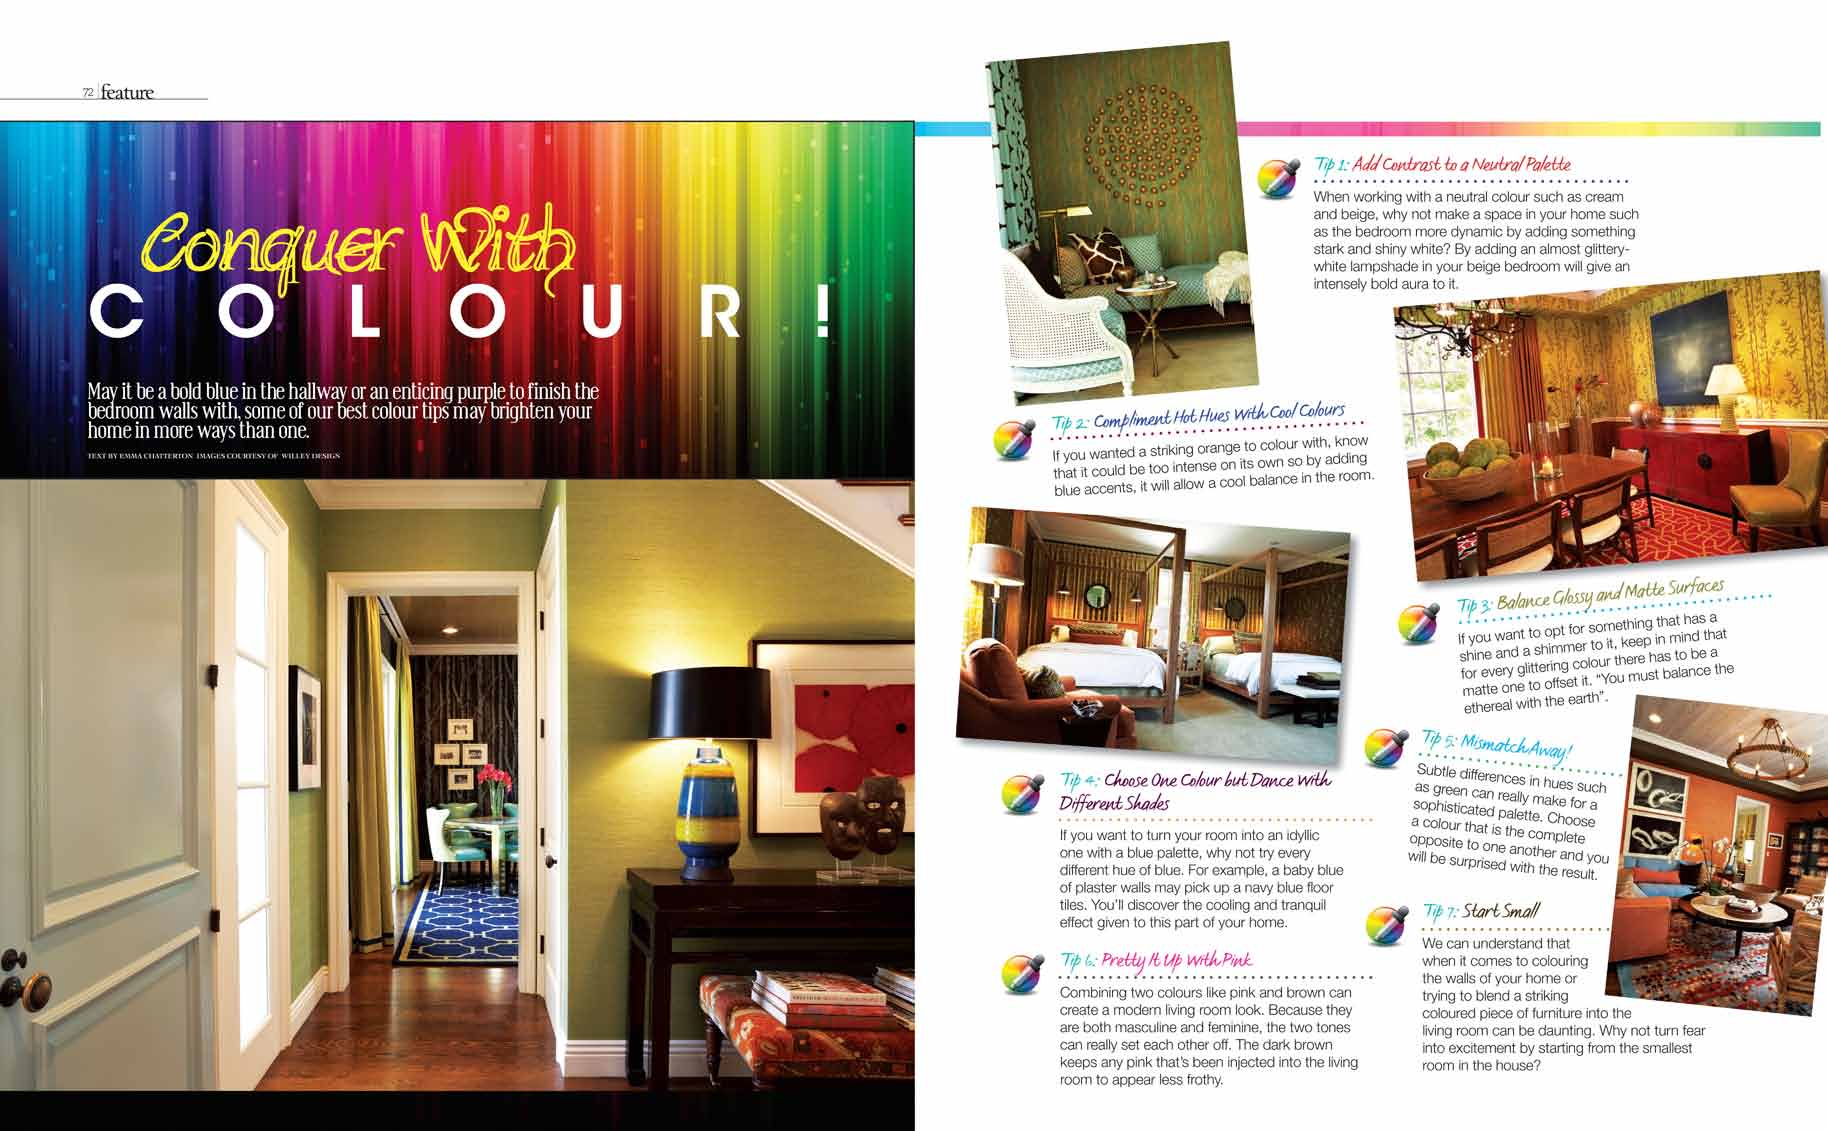 Home Concepts Malaysia 2012 JanFeb - Full Article low-res_Page_6.jpg